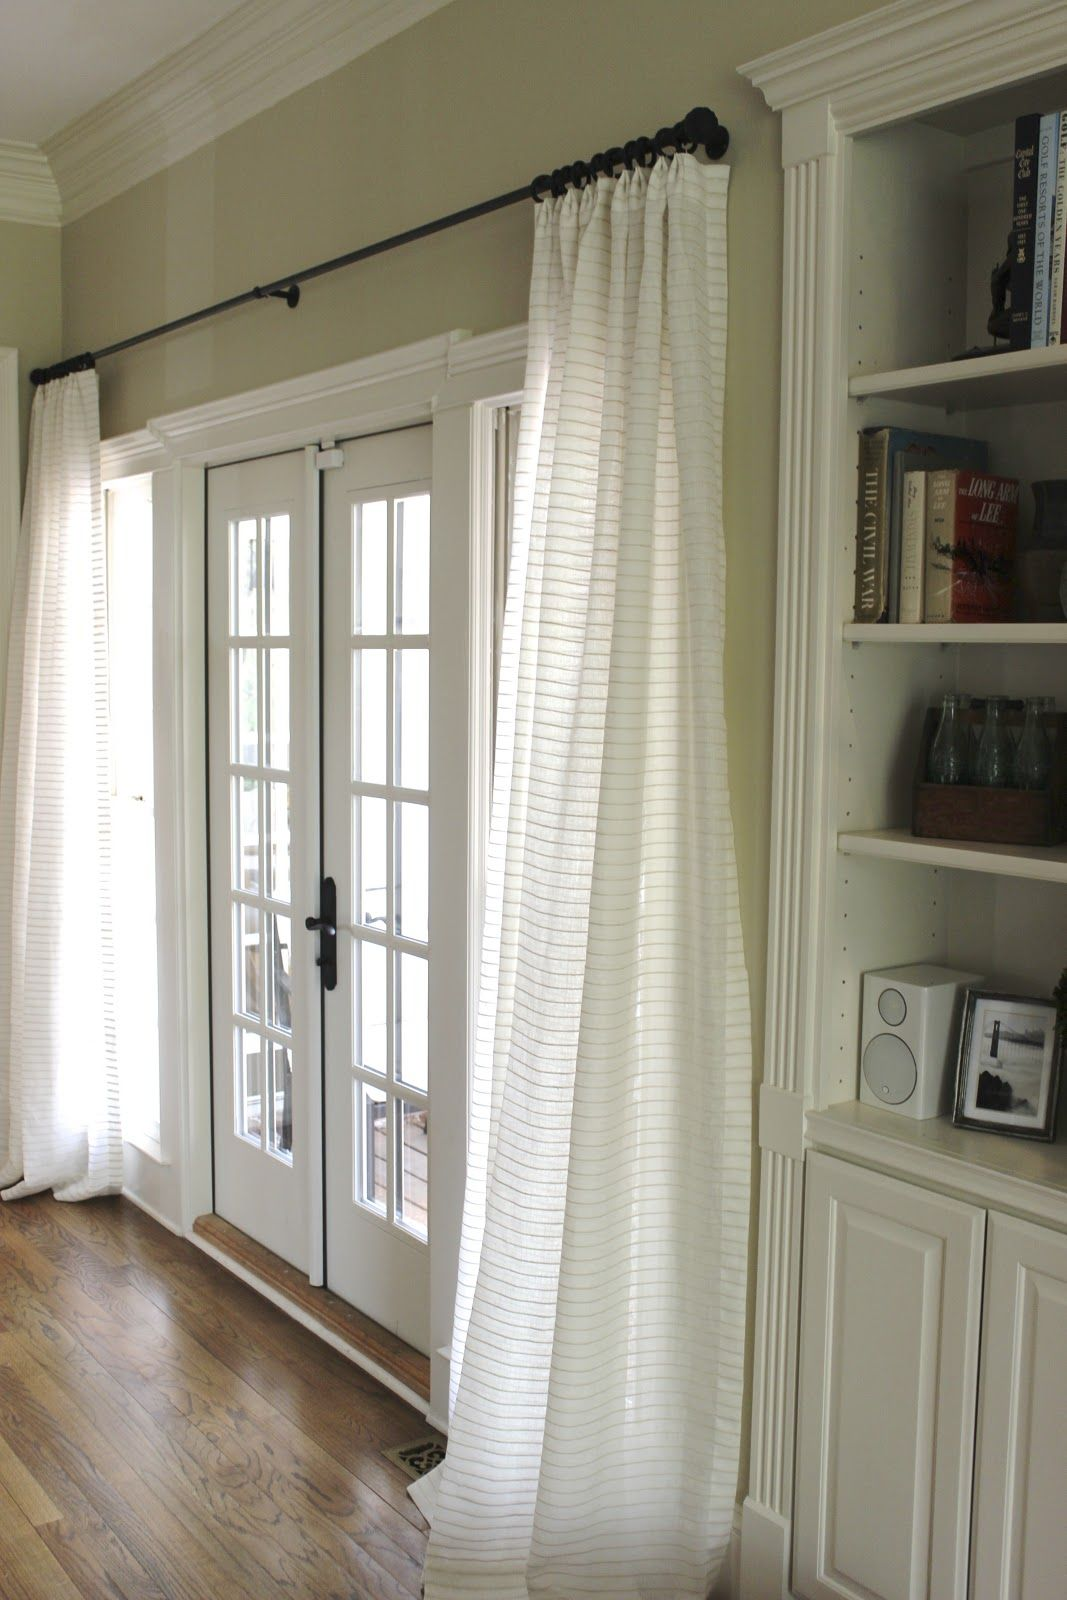 Where To Hang Curtain Rod